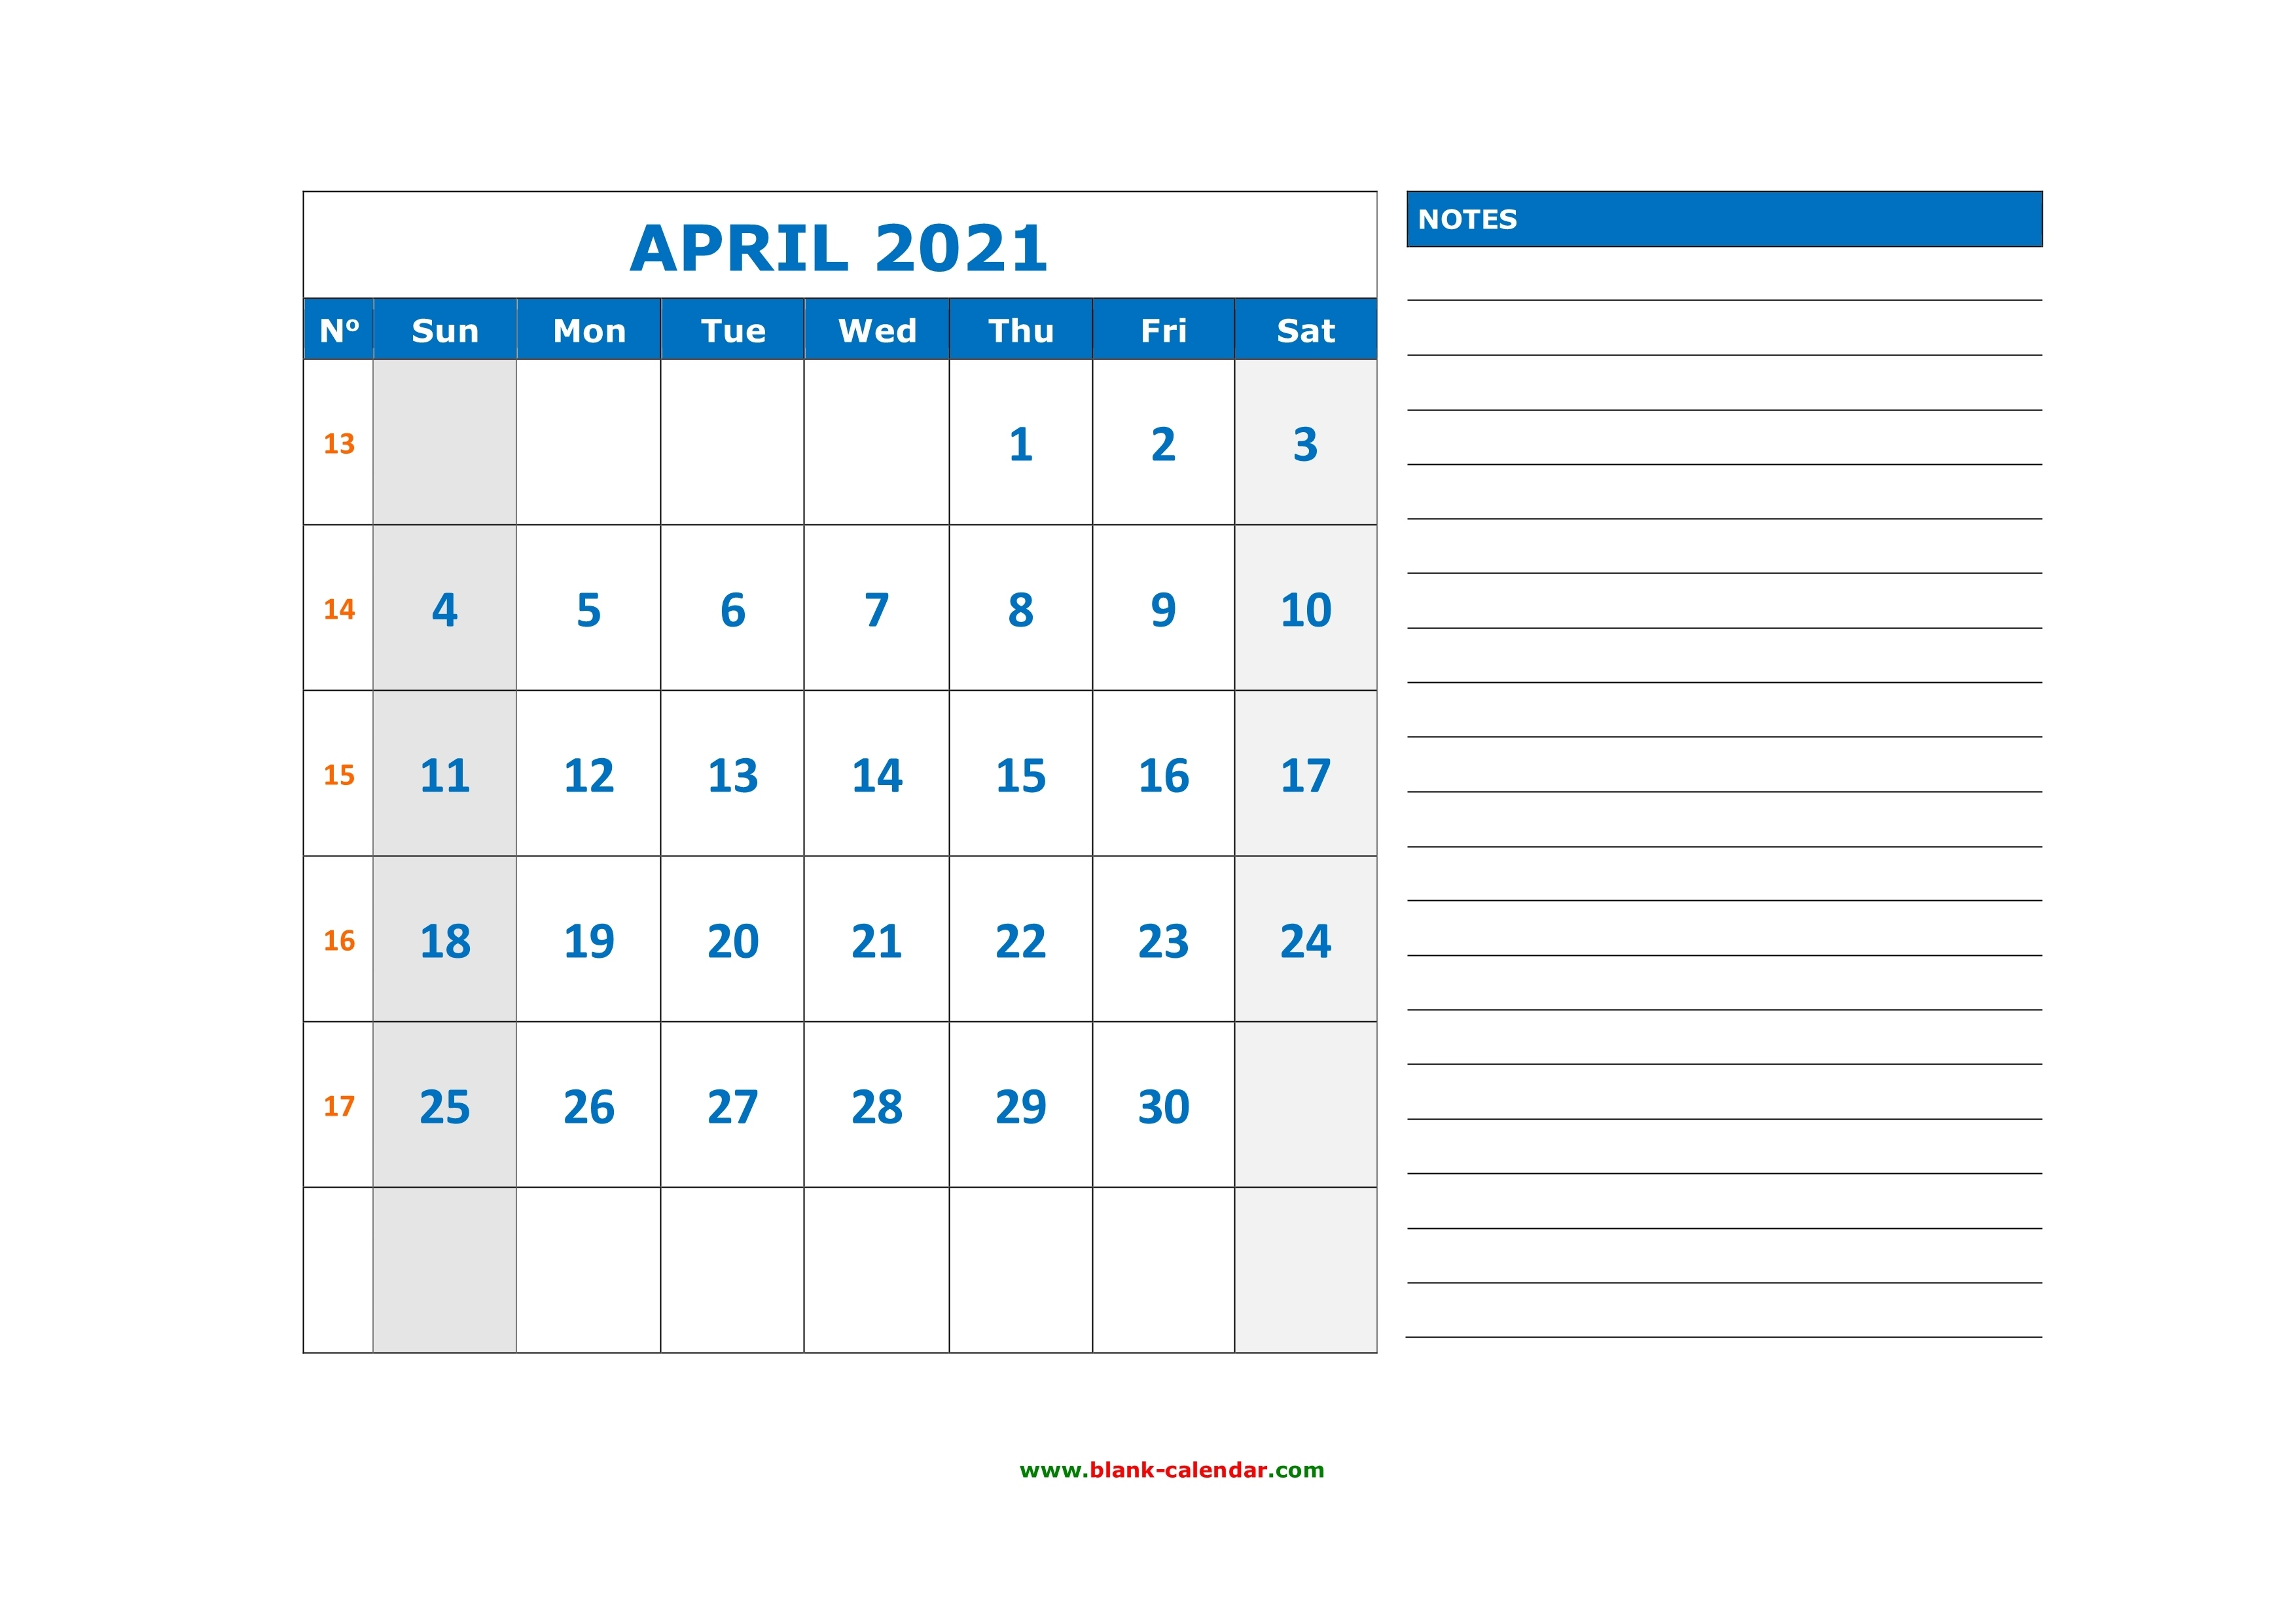 Free Download Printable April 2021 Calendar, Large Space For Appointment And Notes February March April May June 2021 Calendar